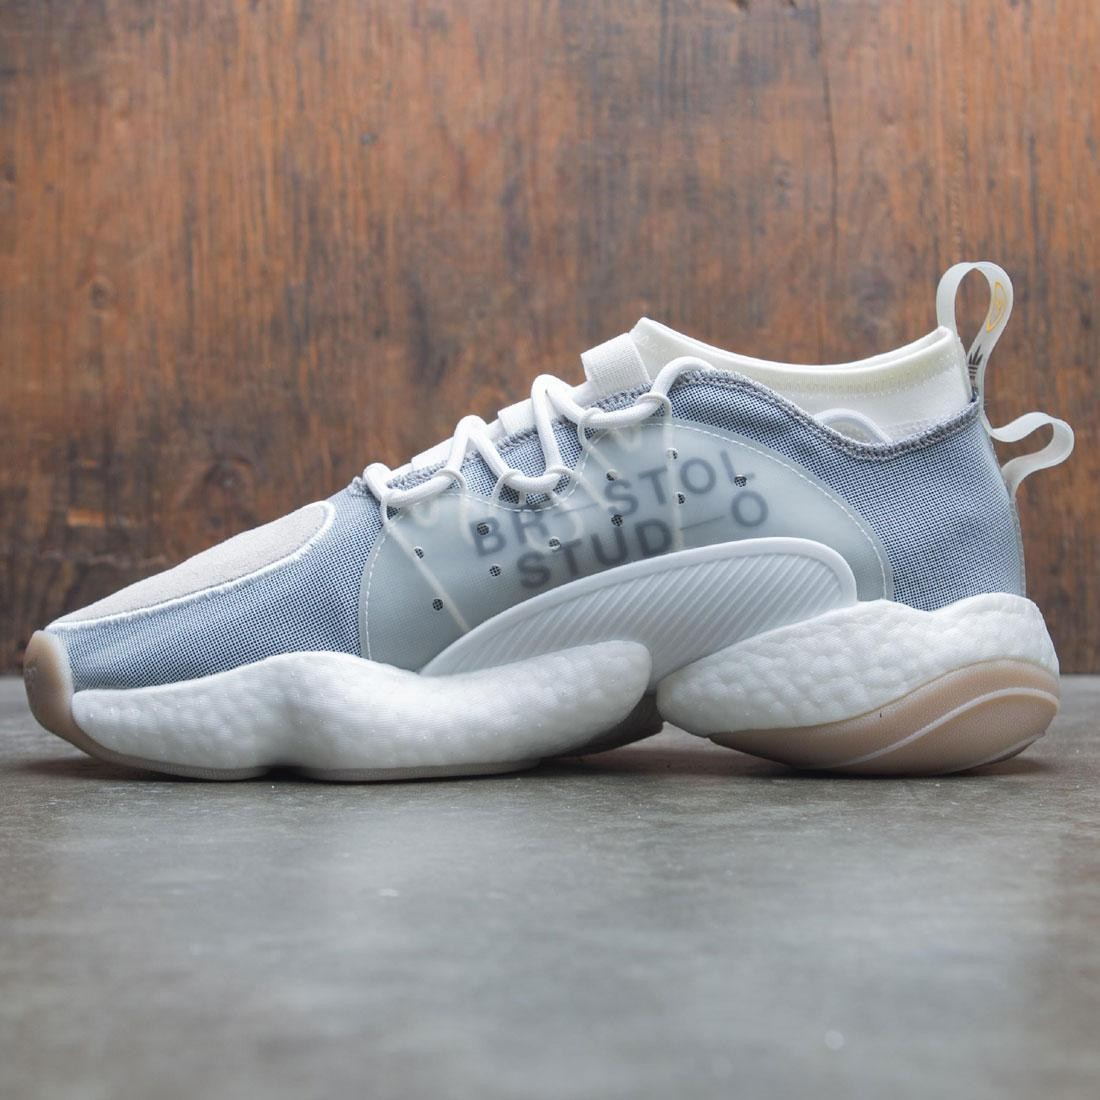 0820eaa50 Adidas x Bristol Studio Men Crazy BYW LVL II (white   cloud white    collegiate navy)